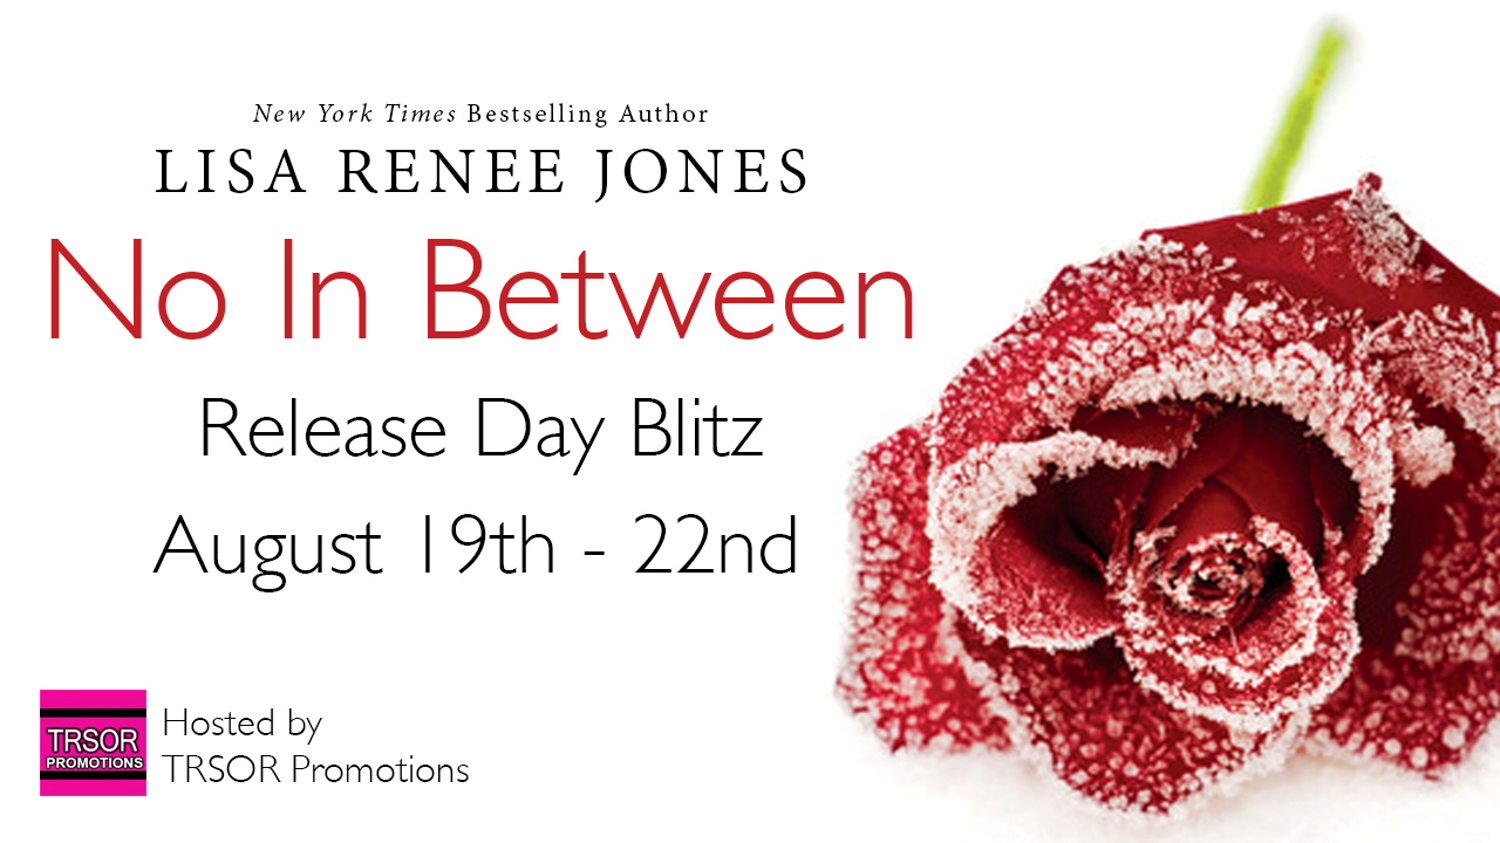 no in between release day blitz.png